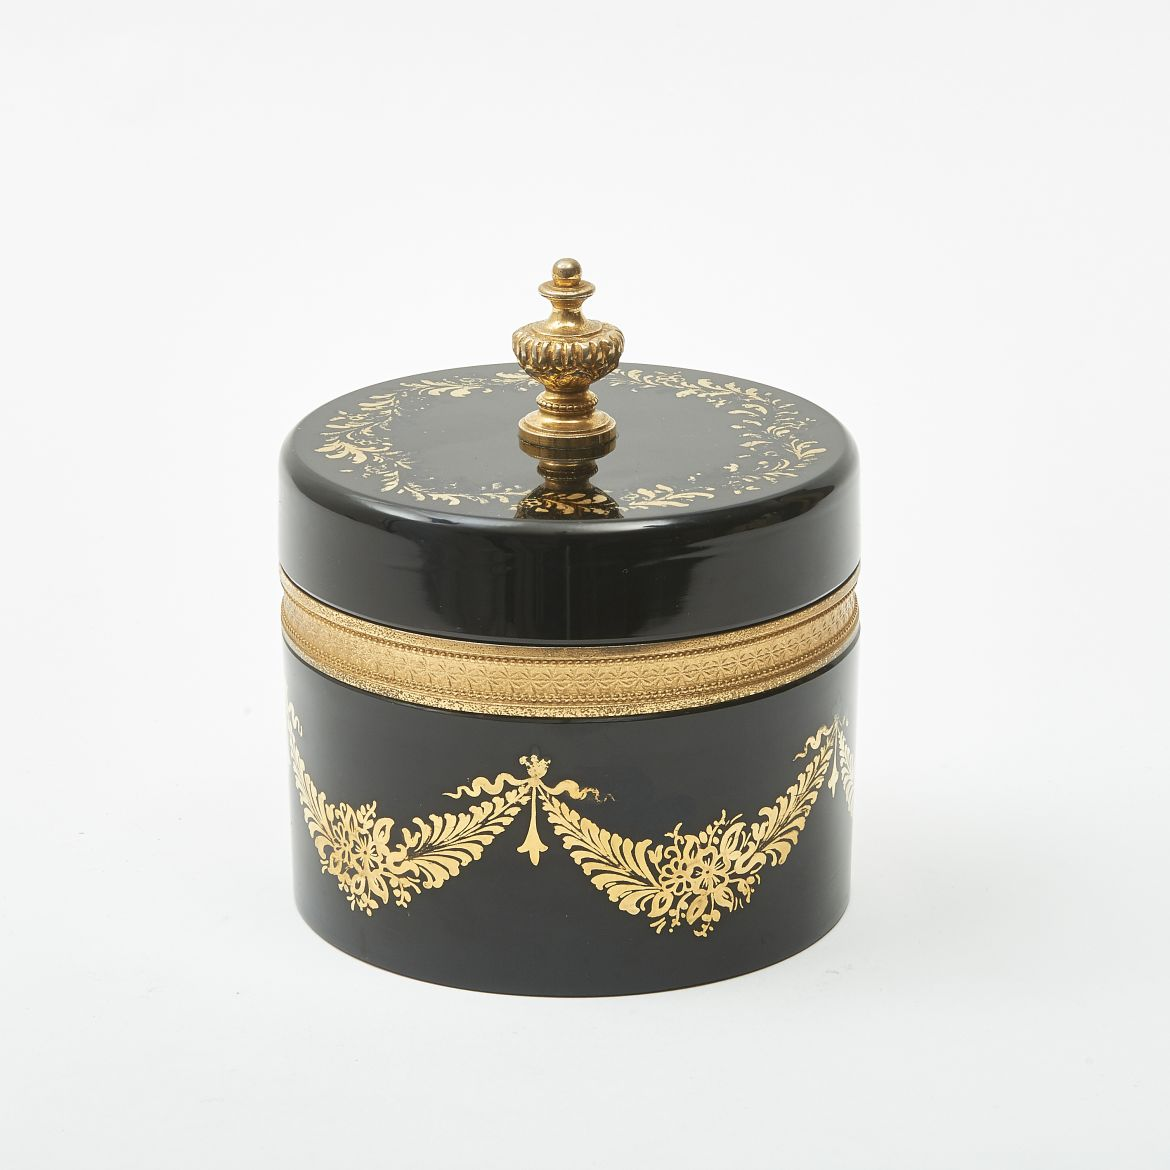 Round Black & Gilt Casket